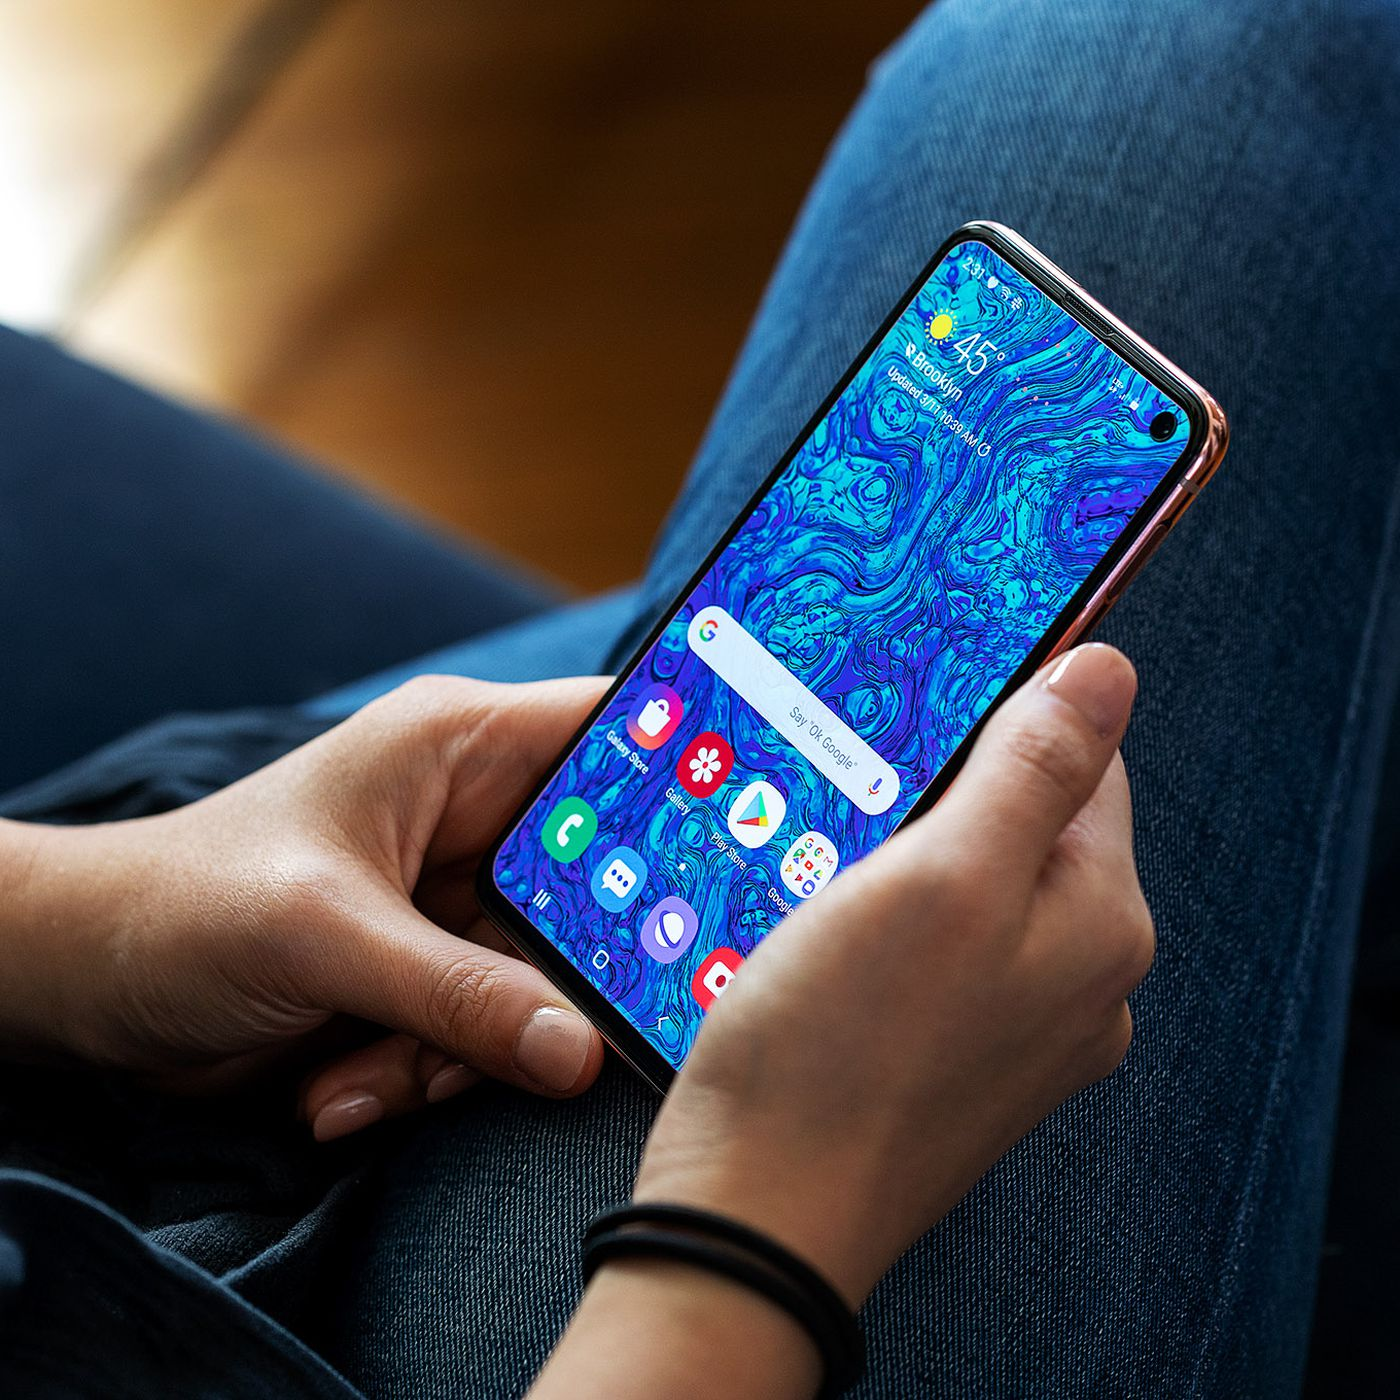 Samsung Galaxy S10E review: short, not shortchanged - The Verge